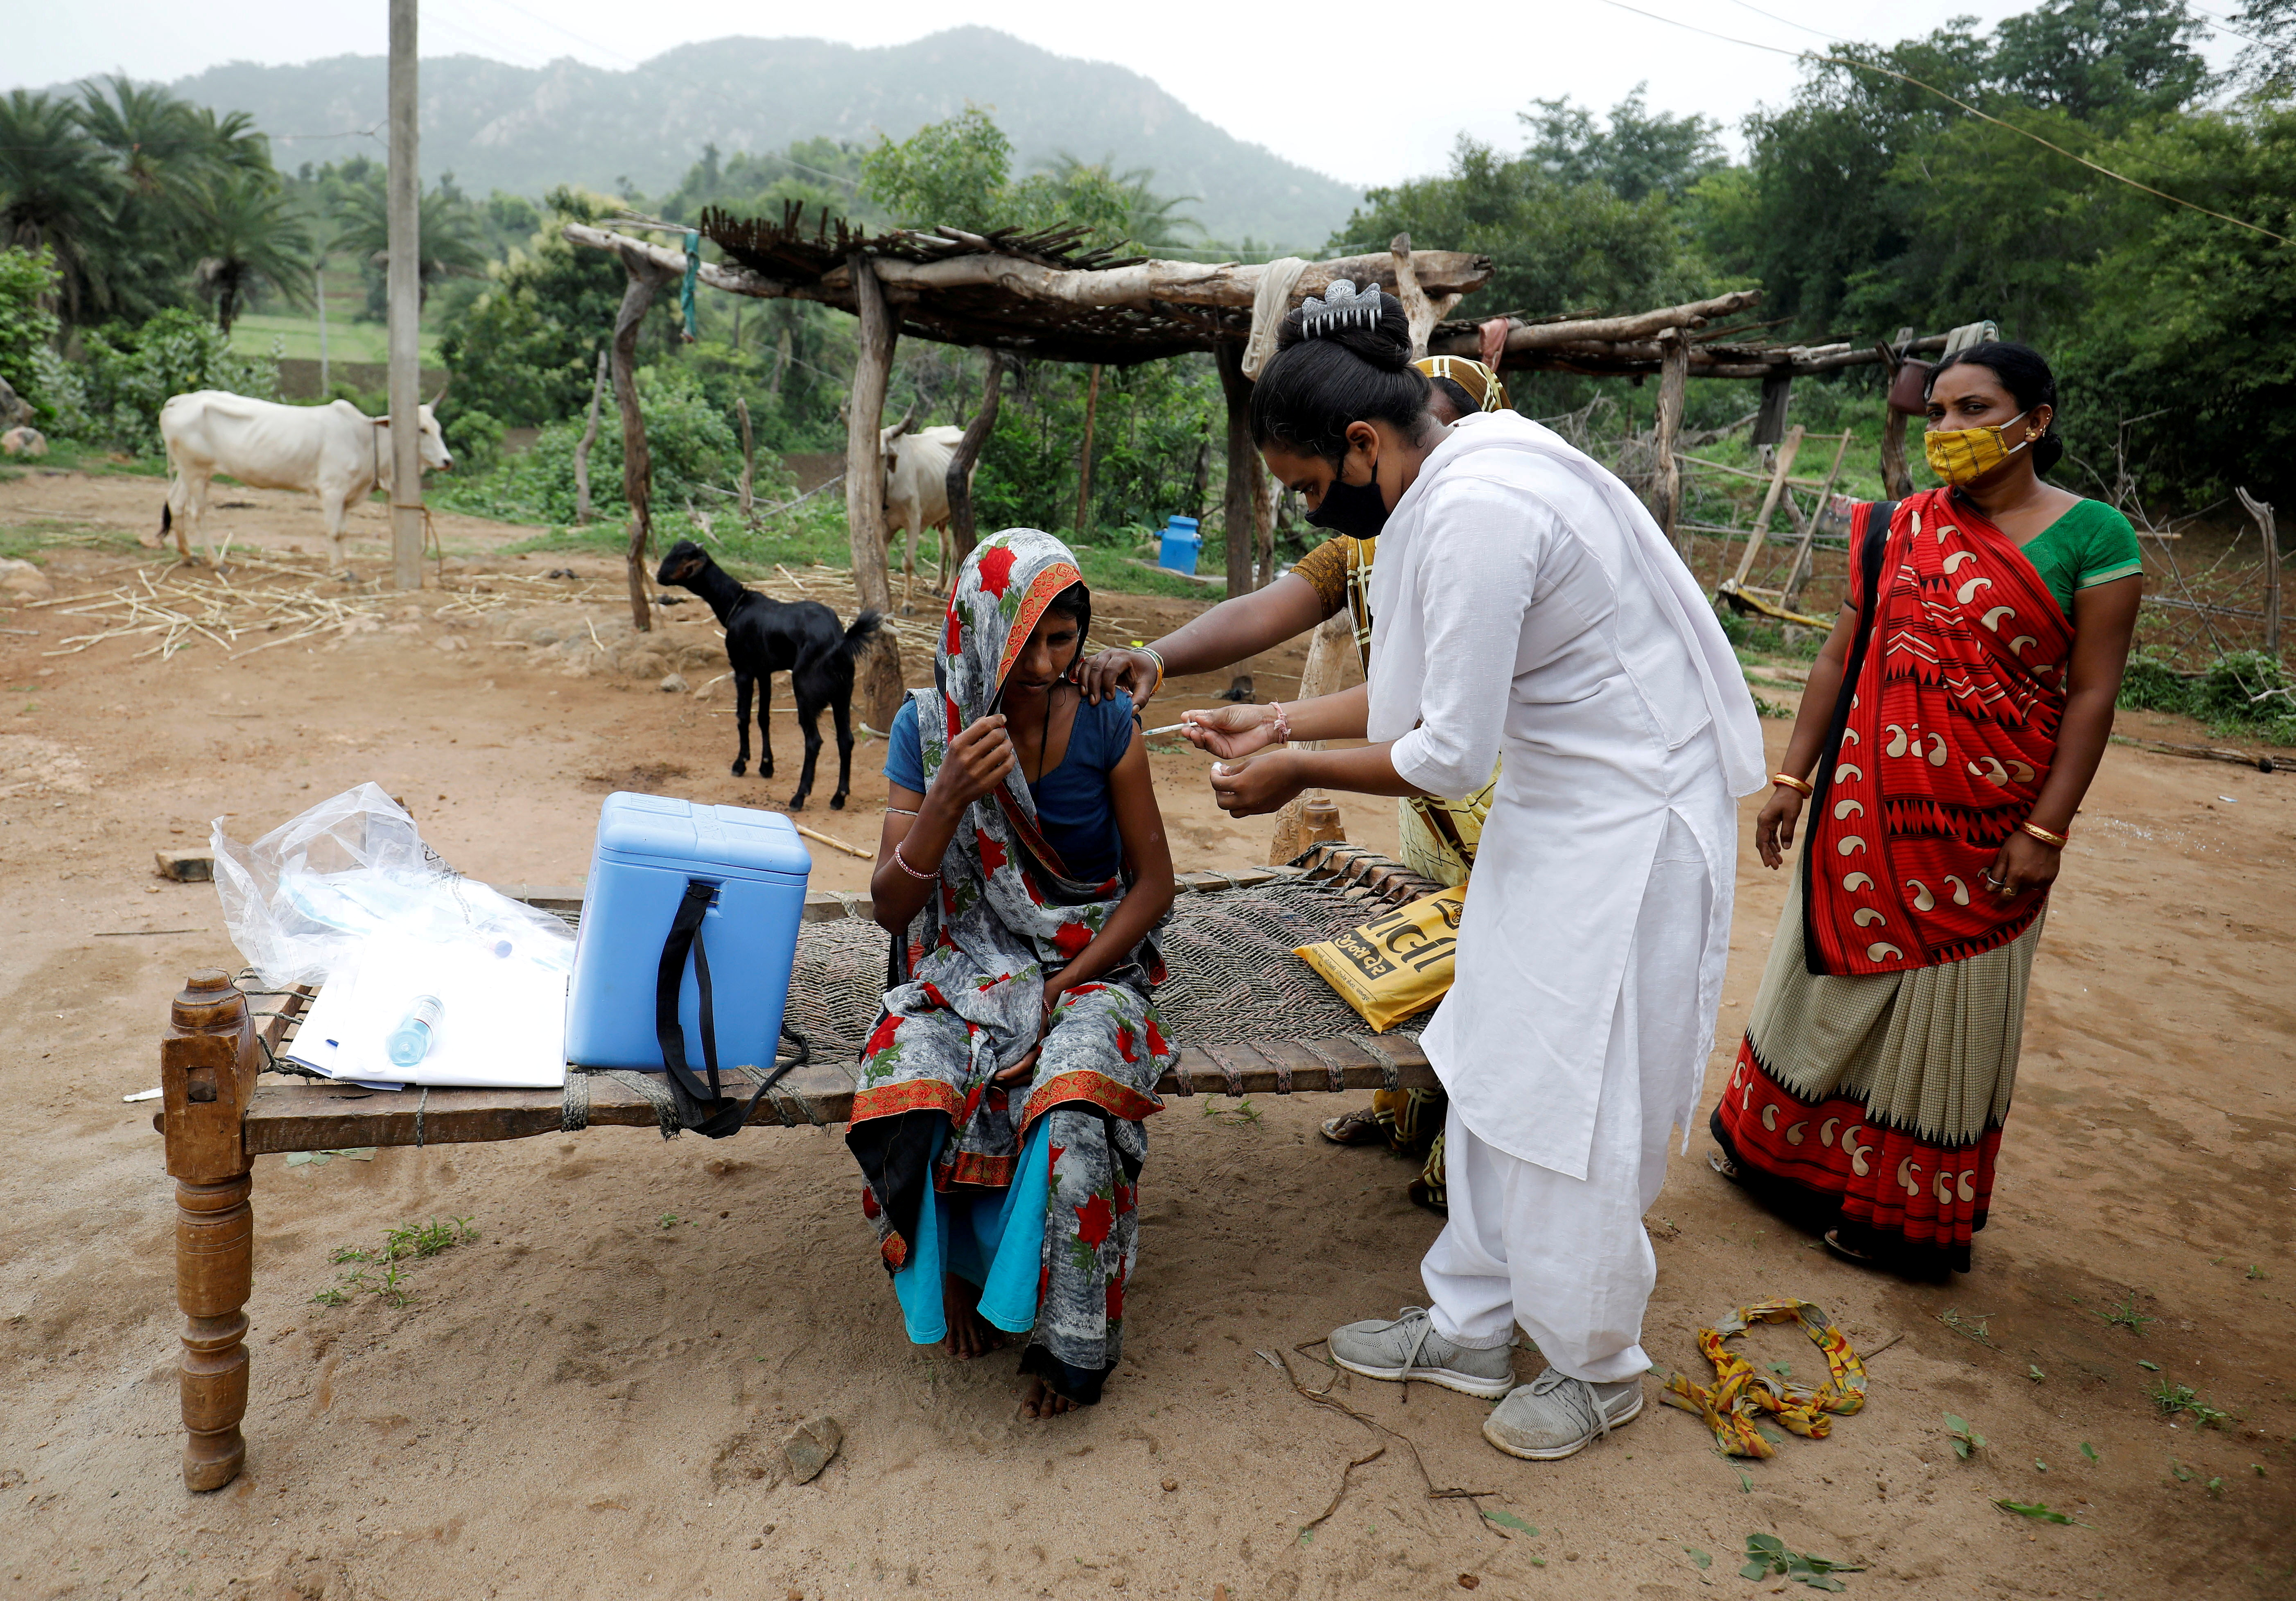 Healthcare worker Jankhana Prajapati gives a dose of the domestically manufactured COVISHIELD vaccine to villager Amiyaben Dabhi during a door-to-door vaccination drive in Banaskantha district in the western state of Gujarat, India, July 23, 2021. REUTERS/Amit Dave/File Photo